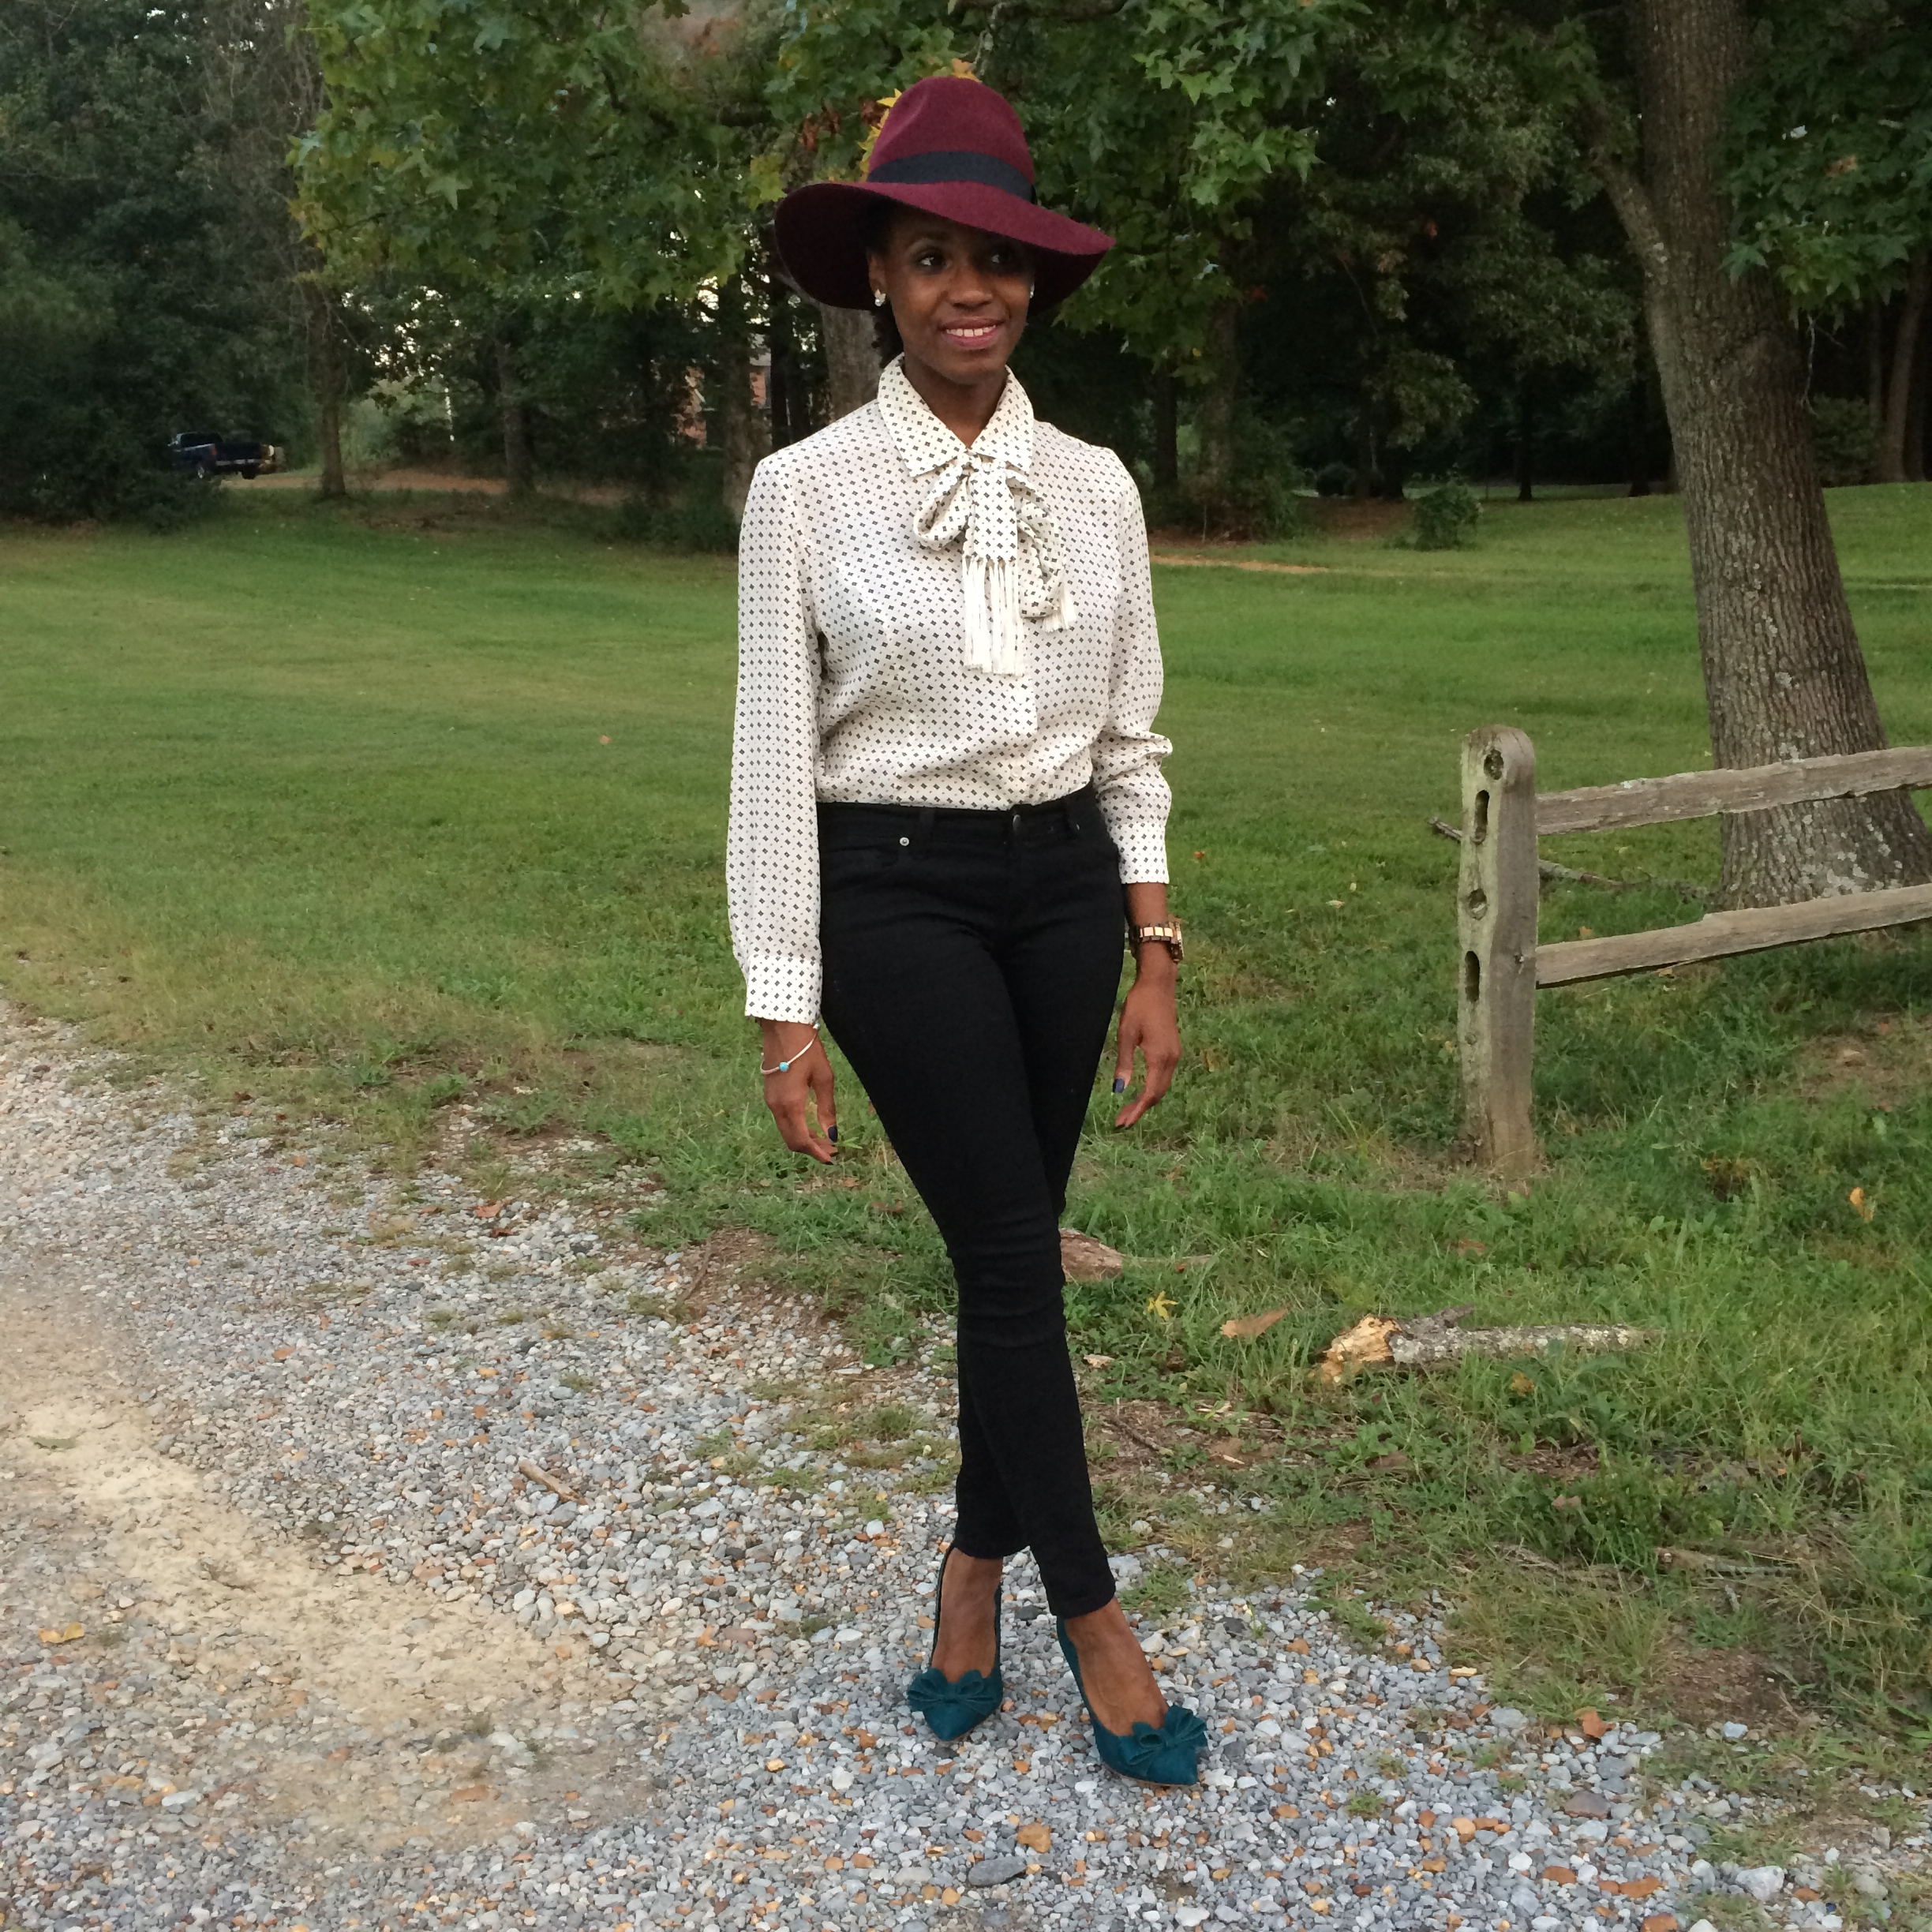 outfit details-hat (similar  here  and  here ) and jeans: forever 21; blouse: vintage; shoes: Steven by Steve Madden (purchase  here )